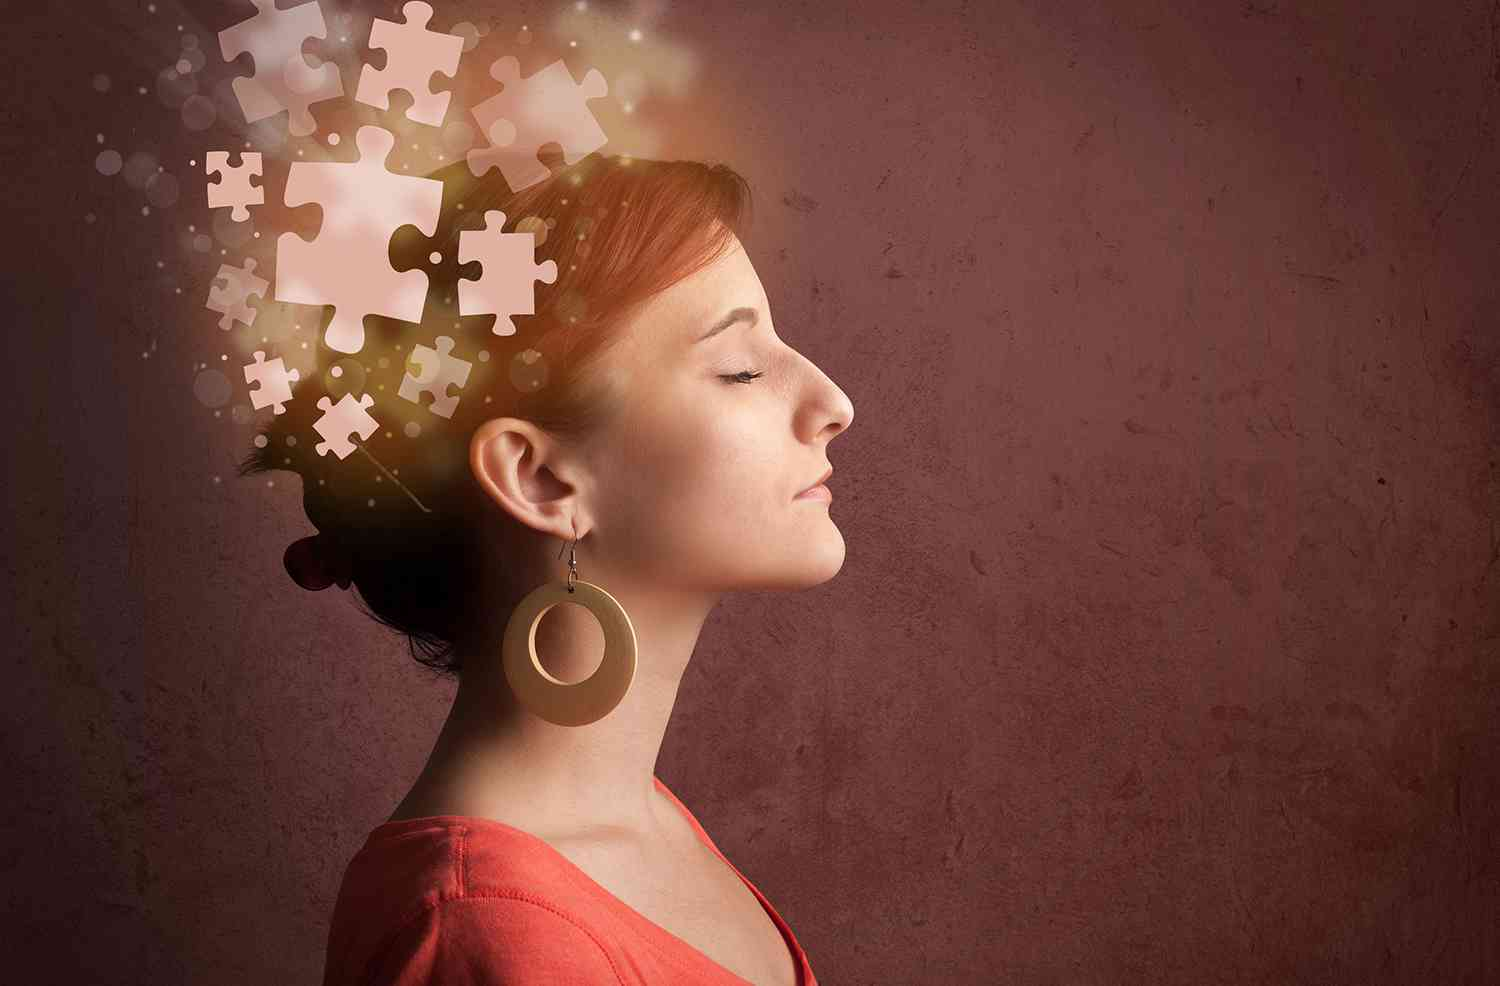 young-person-thinking-glowing-puzzle-mind-grungy-background_dreamstime_xl_41672426_opti